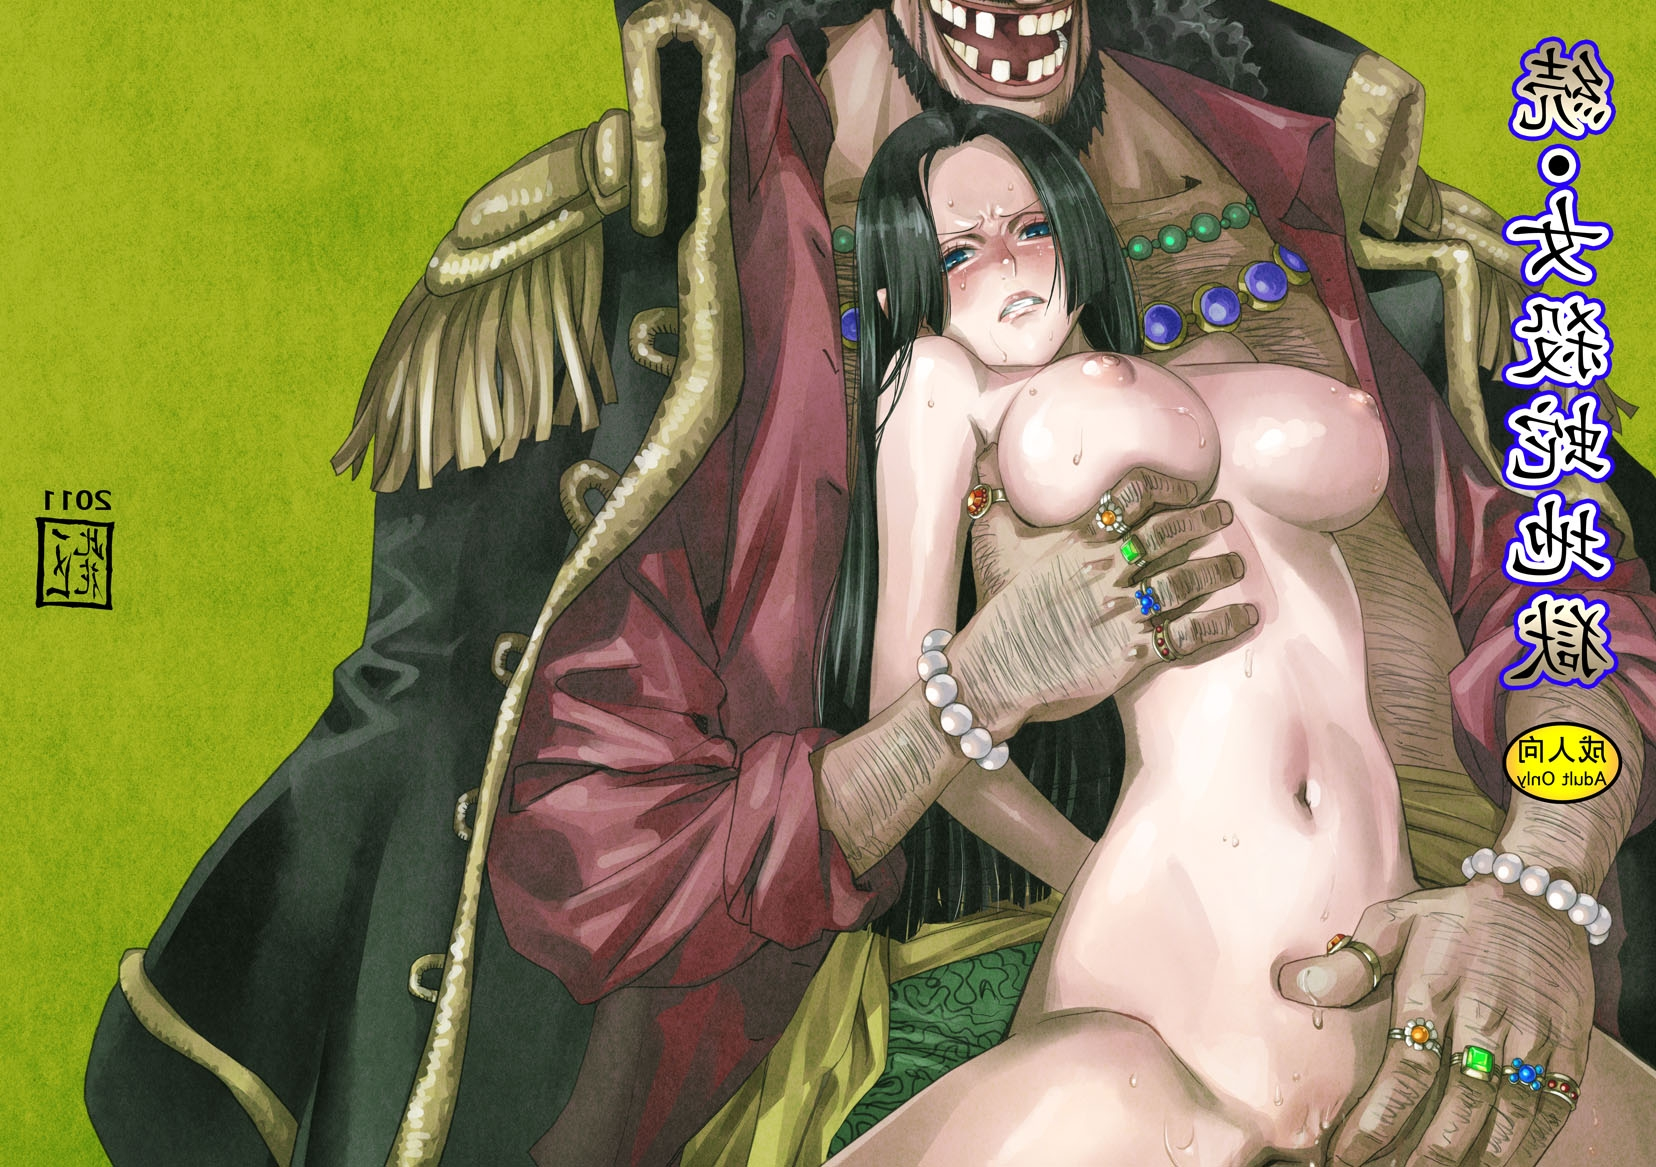 Toon sex pic ##000130787956 blush boa hancock bracelet breast grab breasts fingering grin highres jewelry konohana long hair marshall d teach navel nude one piece powerful women pussy rape ring smile sweat thumb ring uncensored